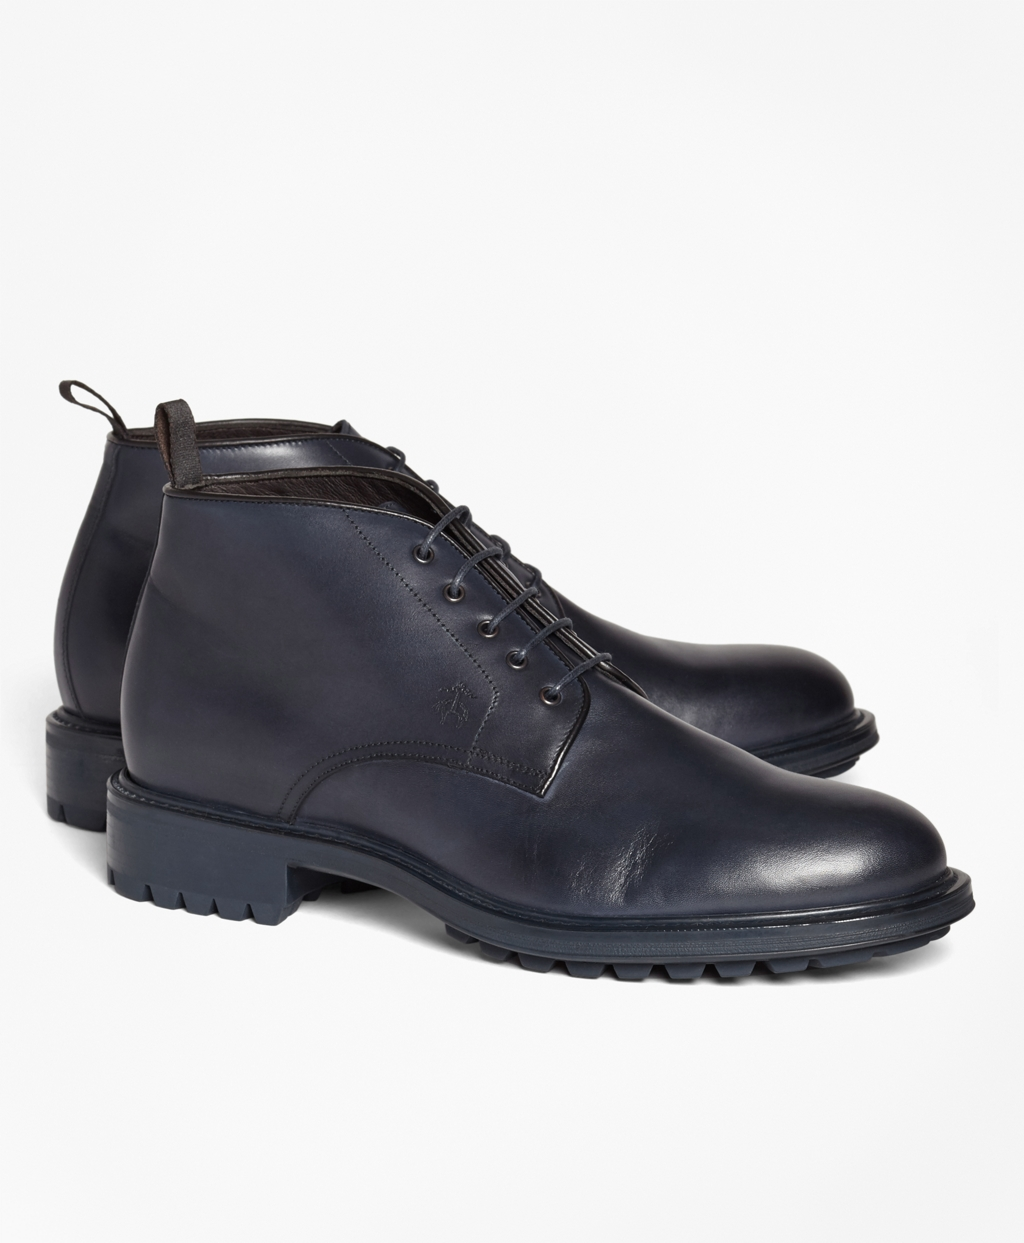 Men's 1818 Footwear Lug-Sole Leather Chukka Boots